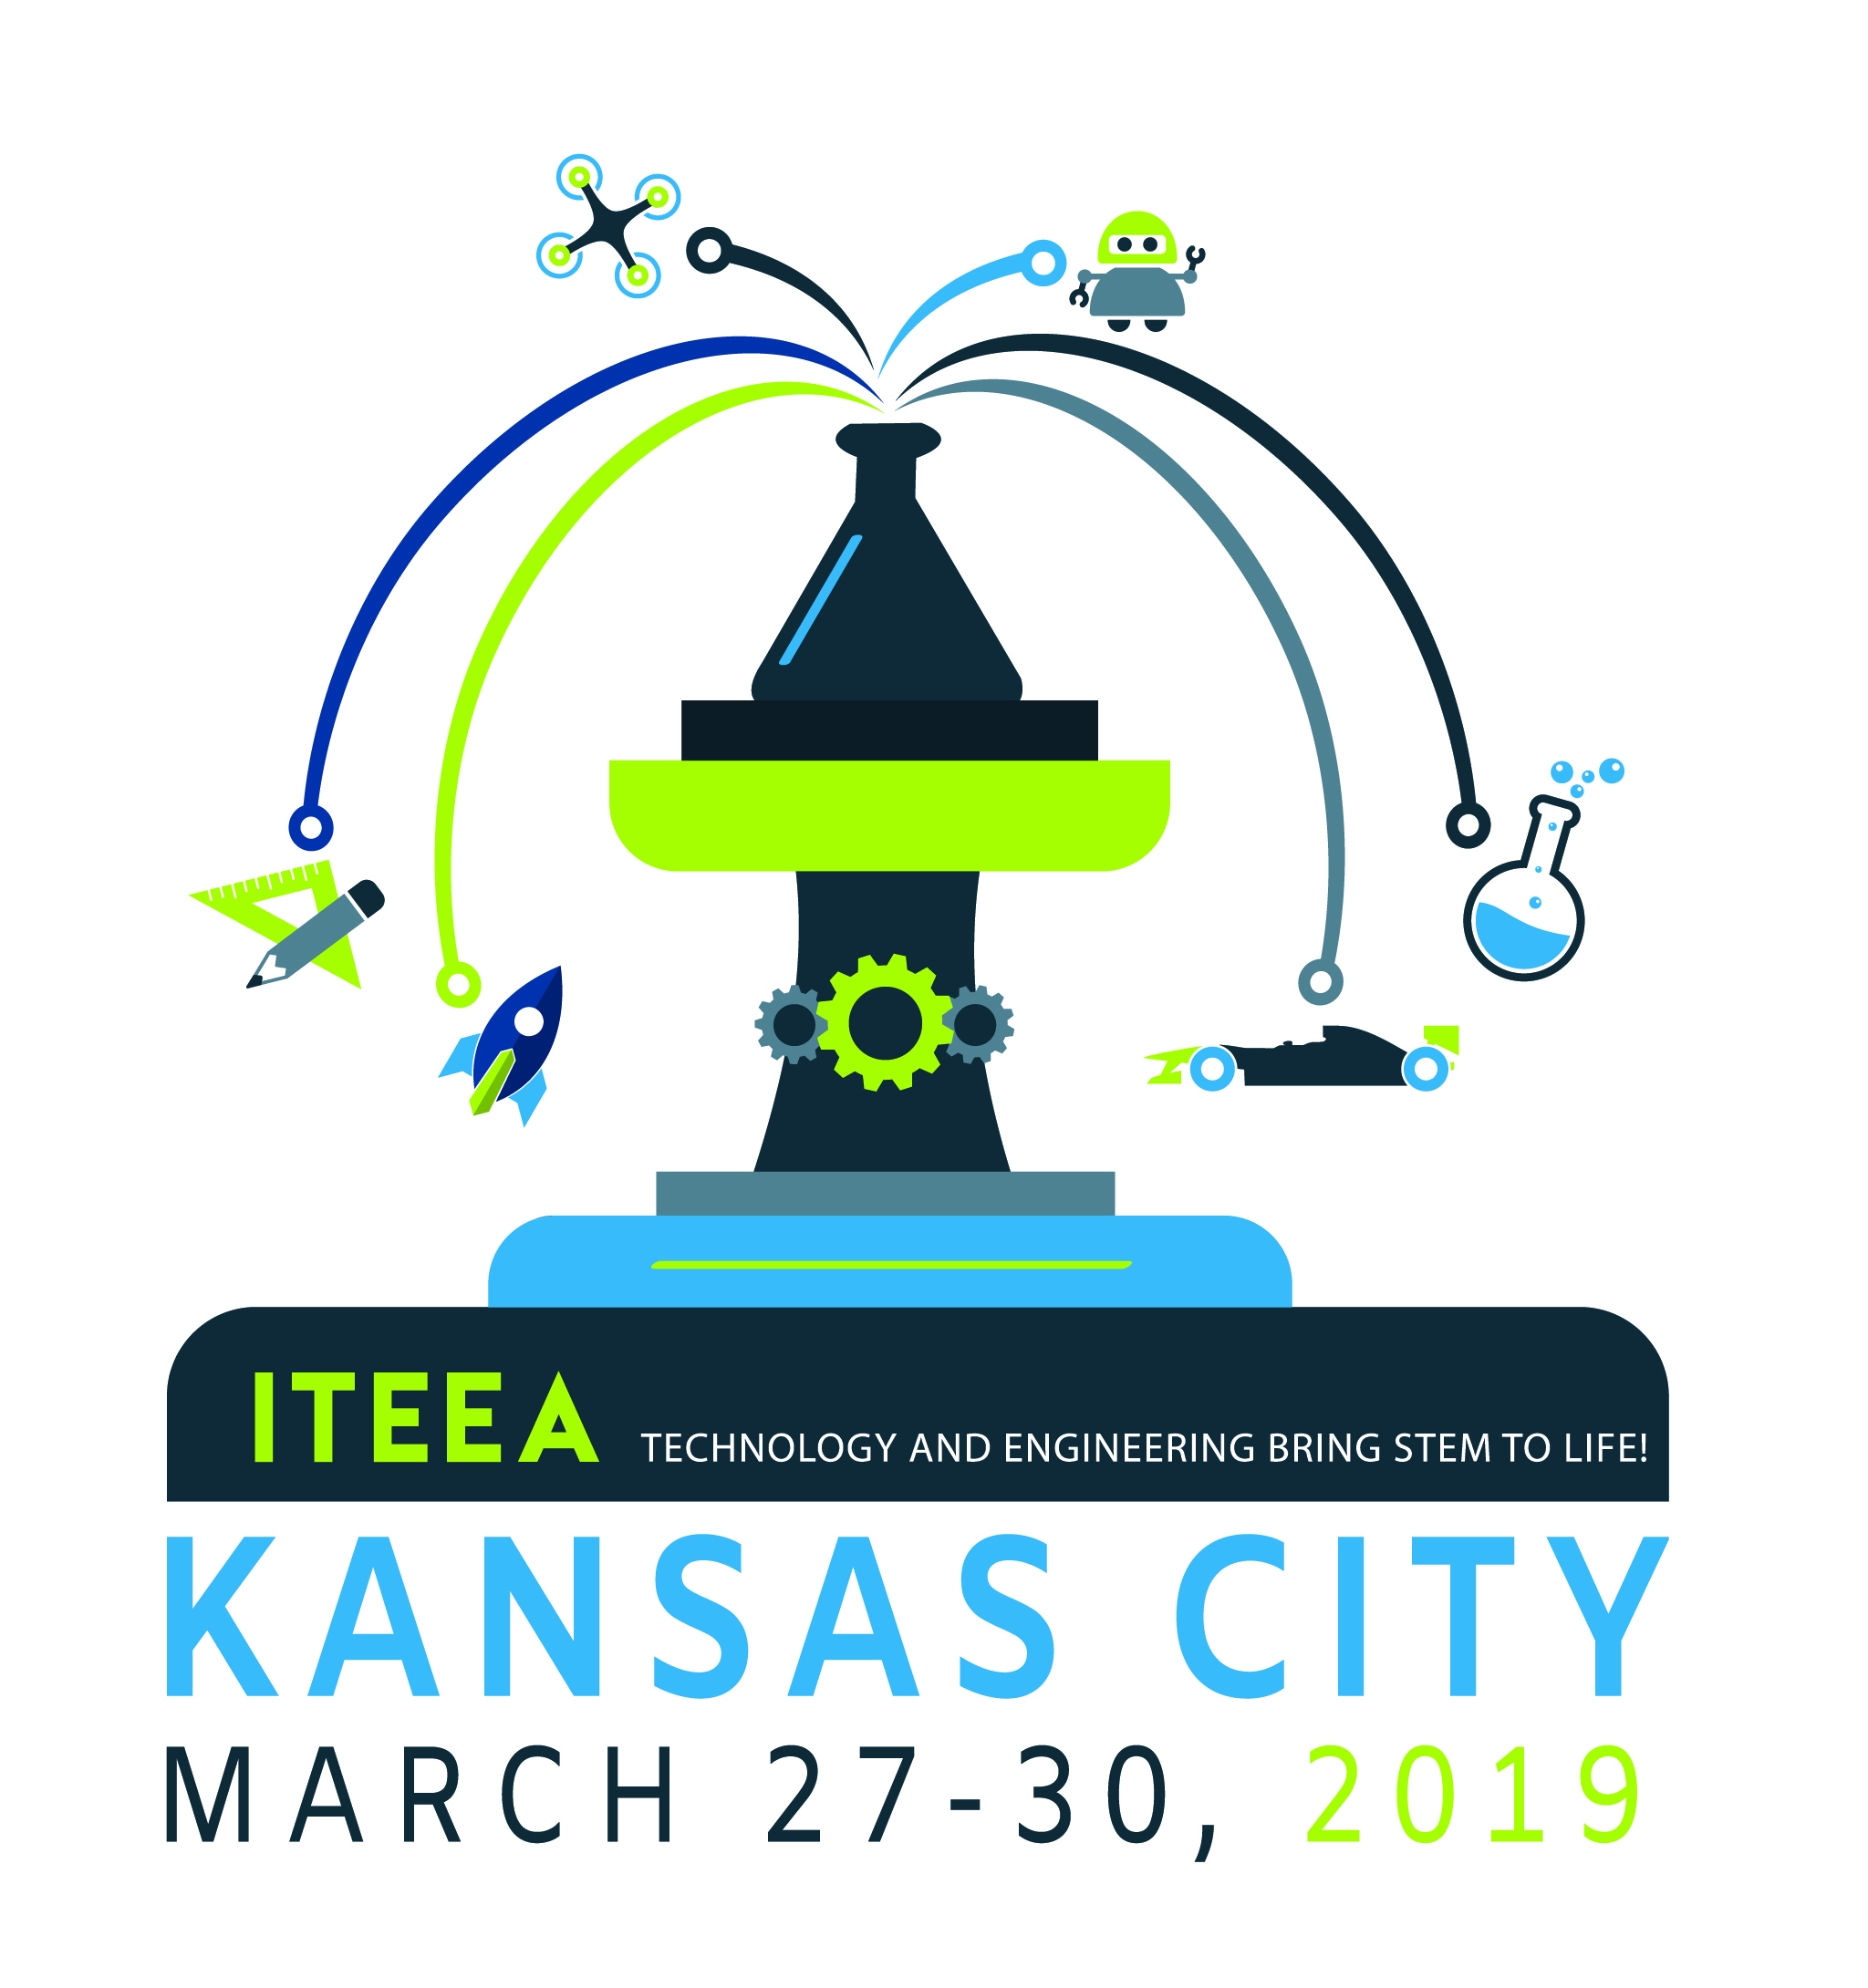 ITEEA 2019 Conference